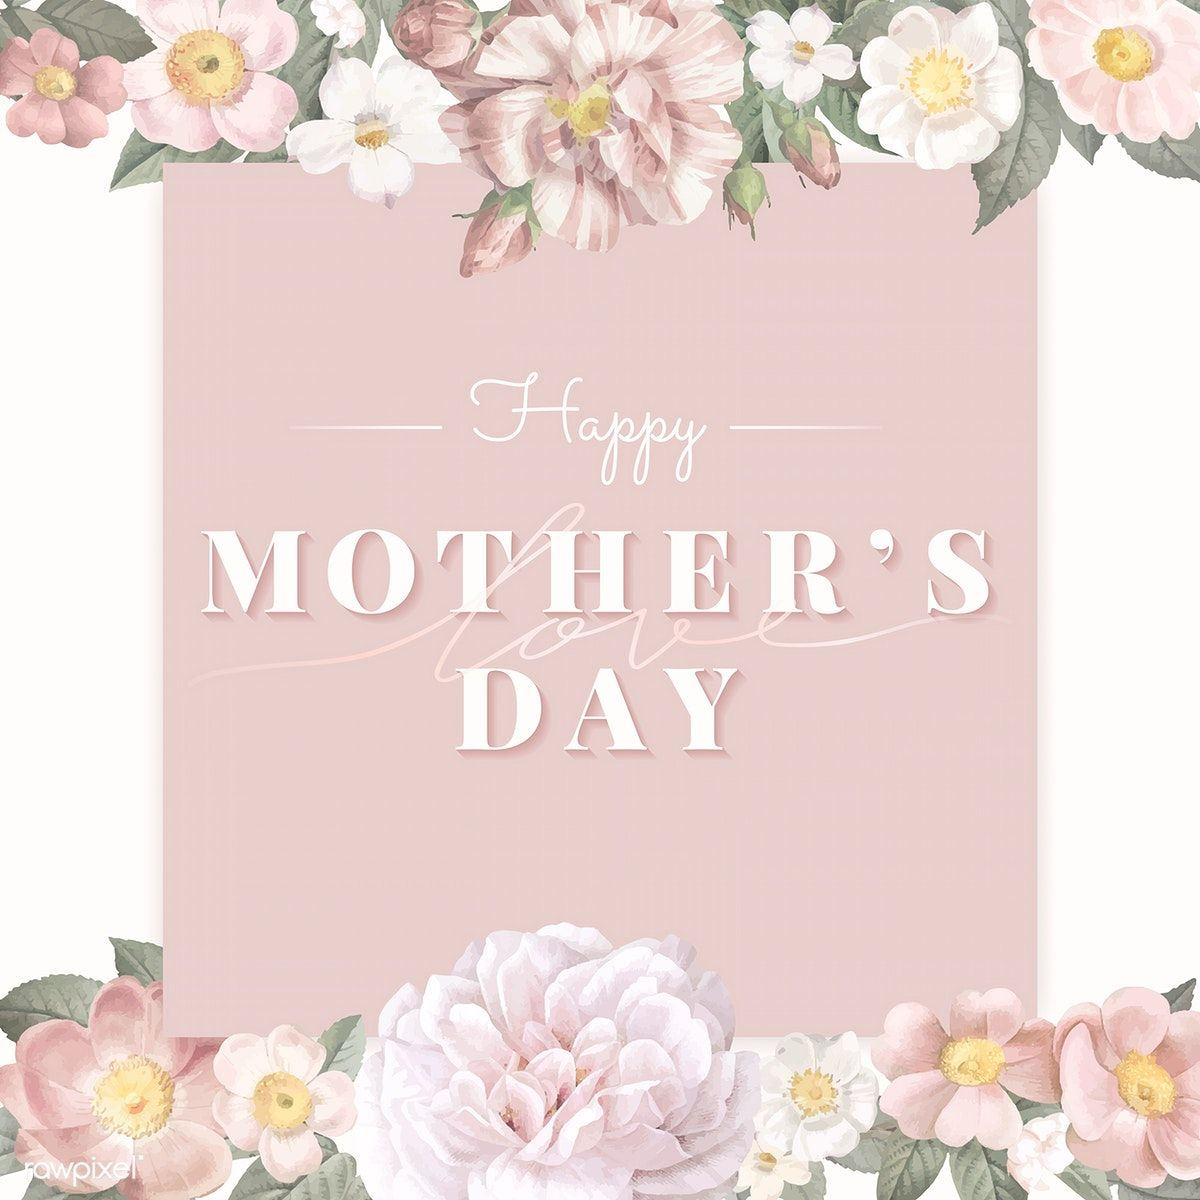 Floral Elegant Mother S Day Card Vector Premium Image By Rawpixel Com Wan In 2020 Mothers Day Poster Flower Illustration Happy Mothers Day